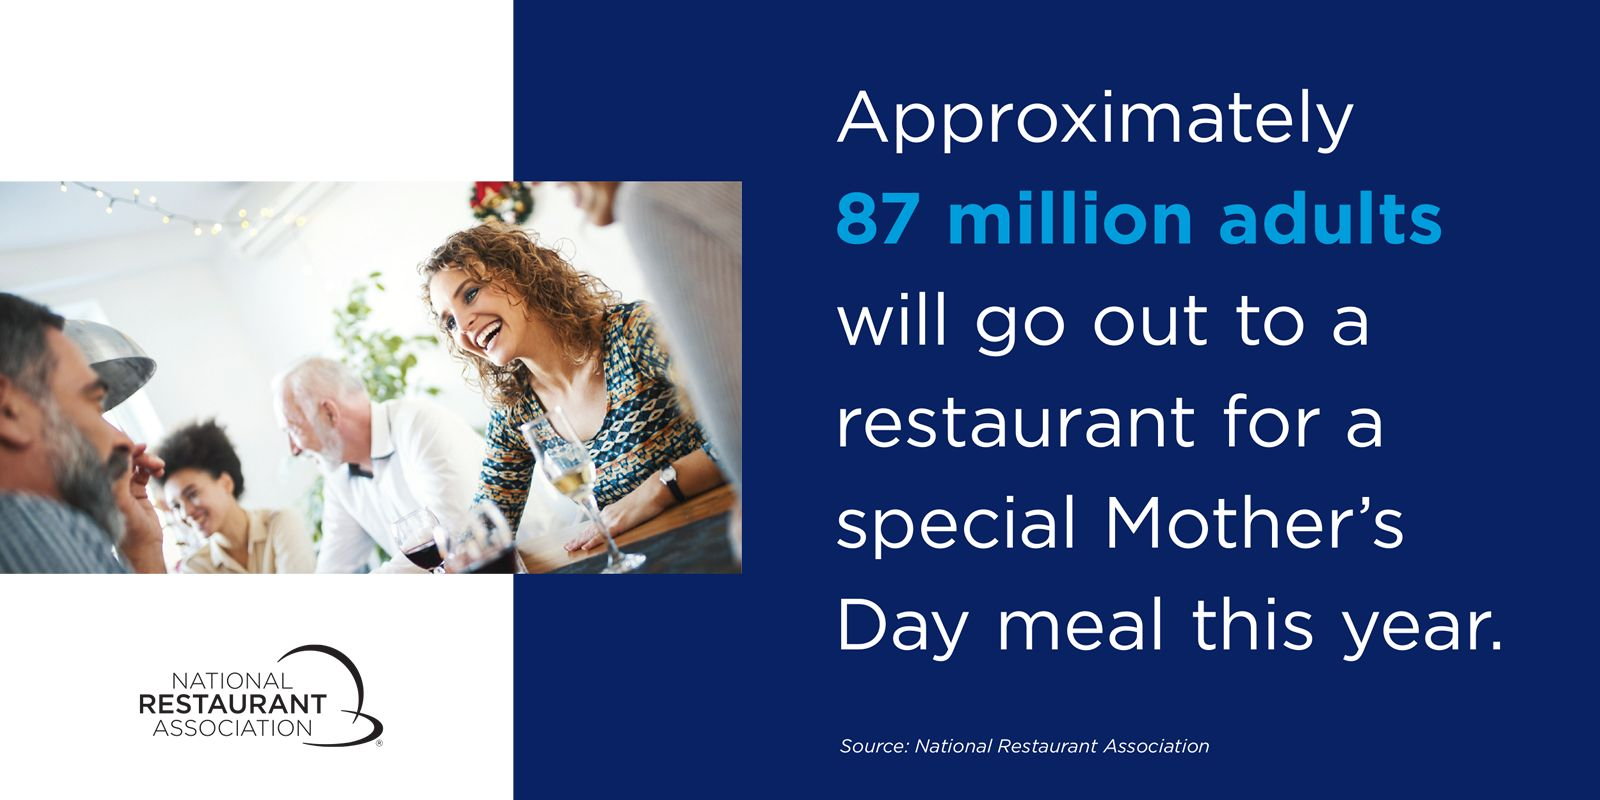 One-third of All Adults Plan to Dine Out on Mother's Day